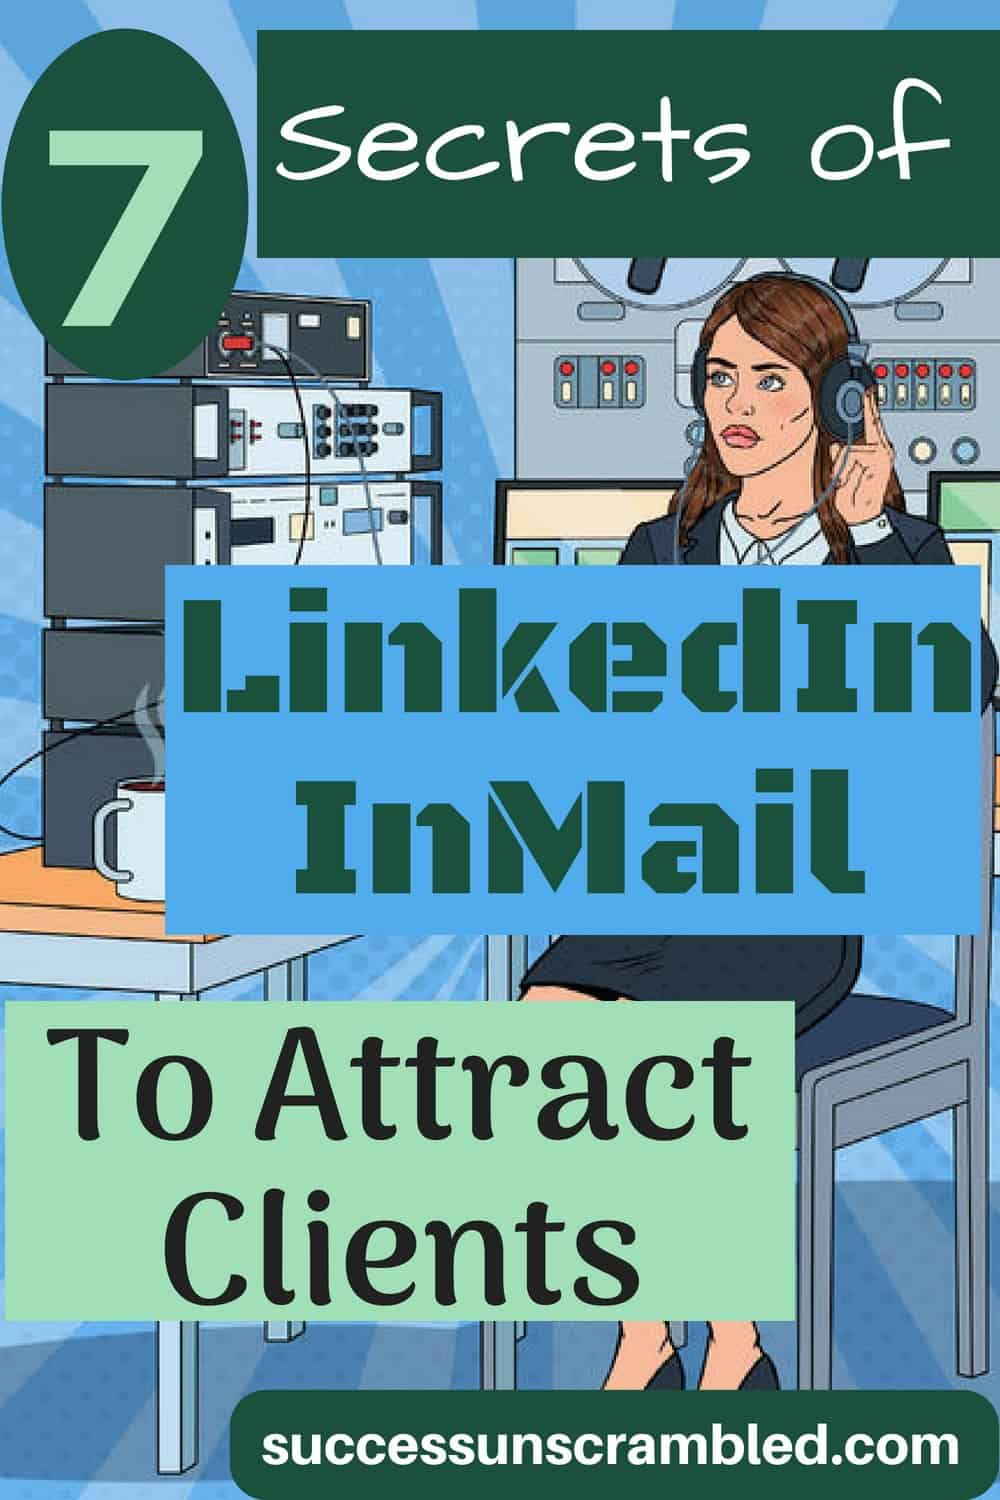 7 Secrets of LinkedIn InMail To Attract Clients